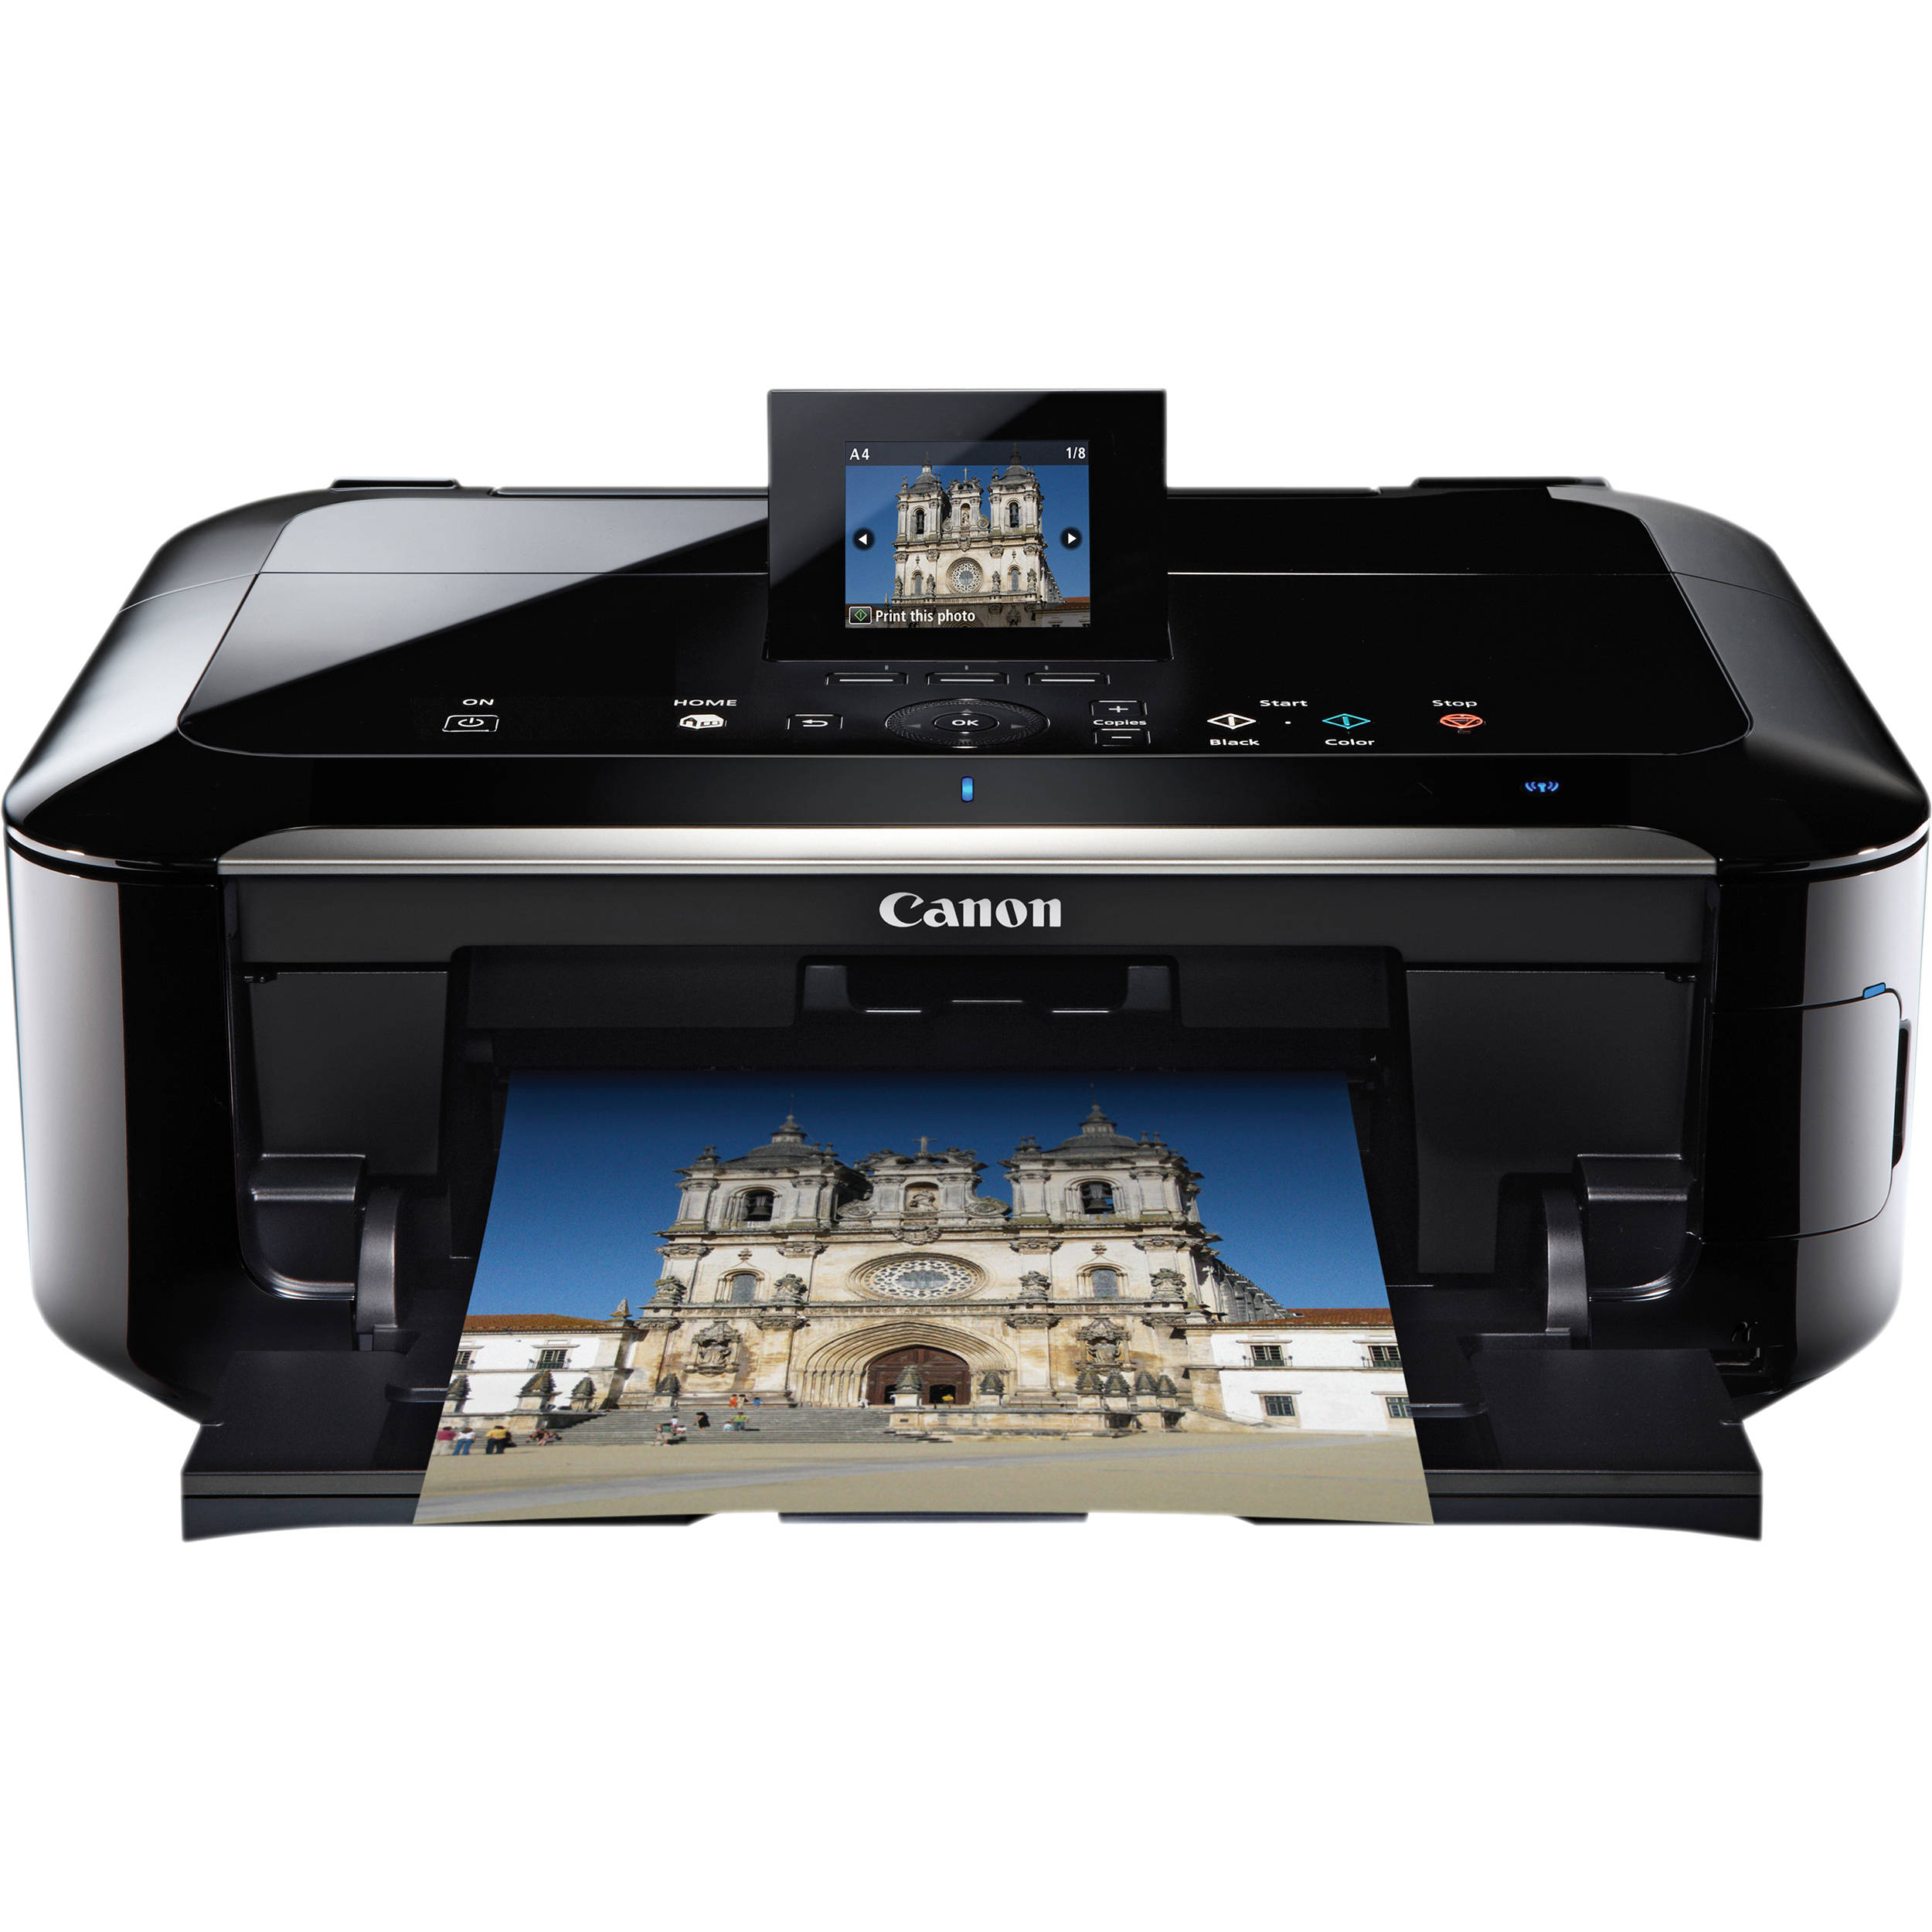 Canon Pixma Mg5320 All In One Color Inkjet Photo Printer The Single Large Doublesided Circuit Board From A Canola